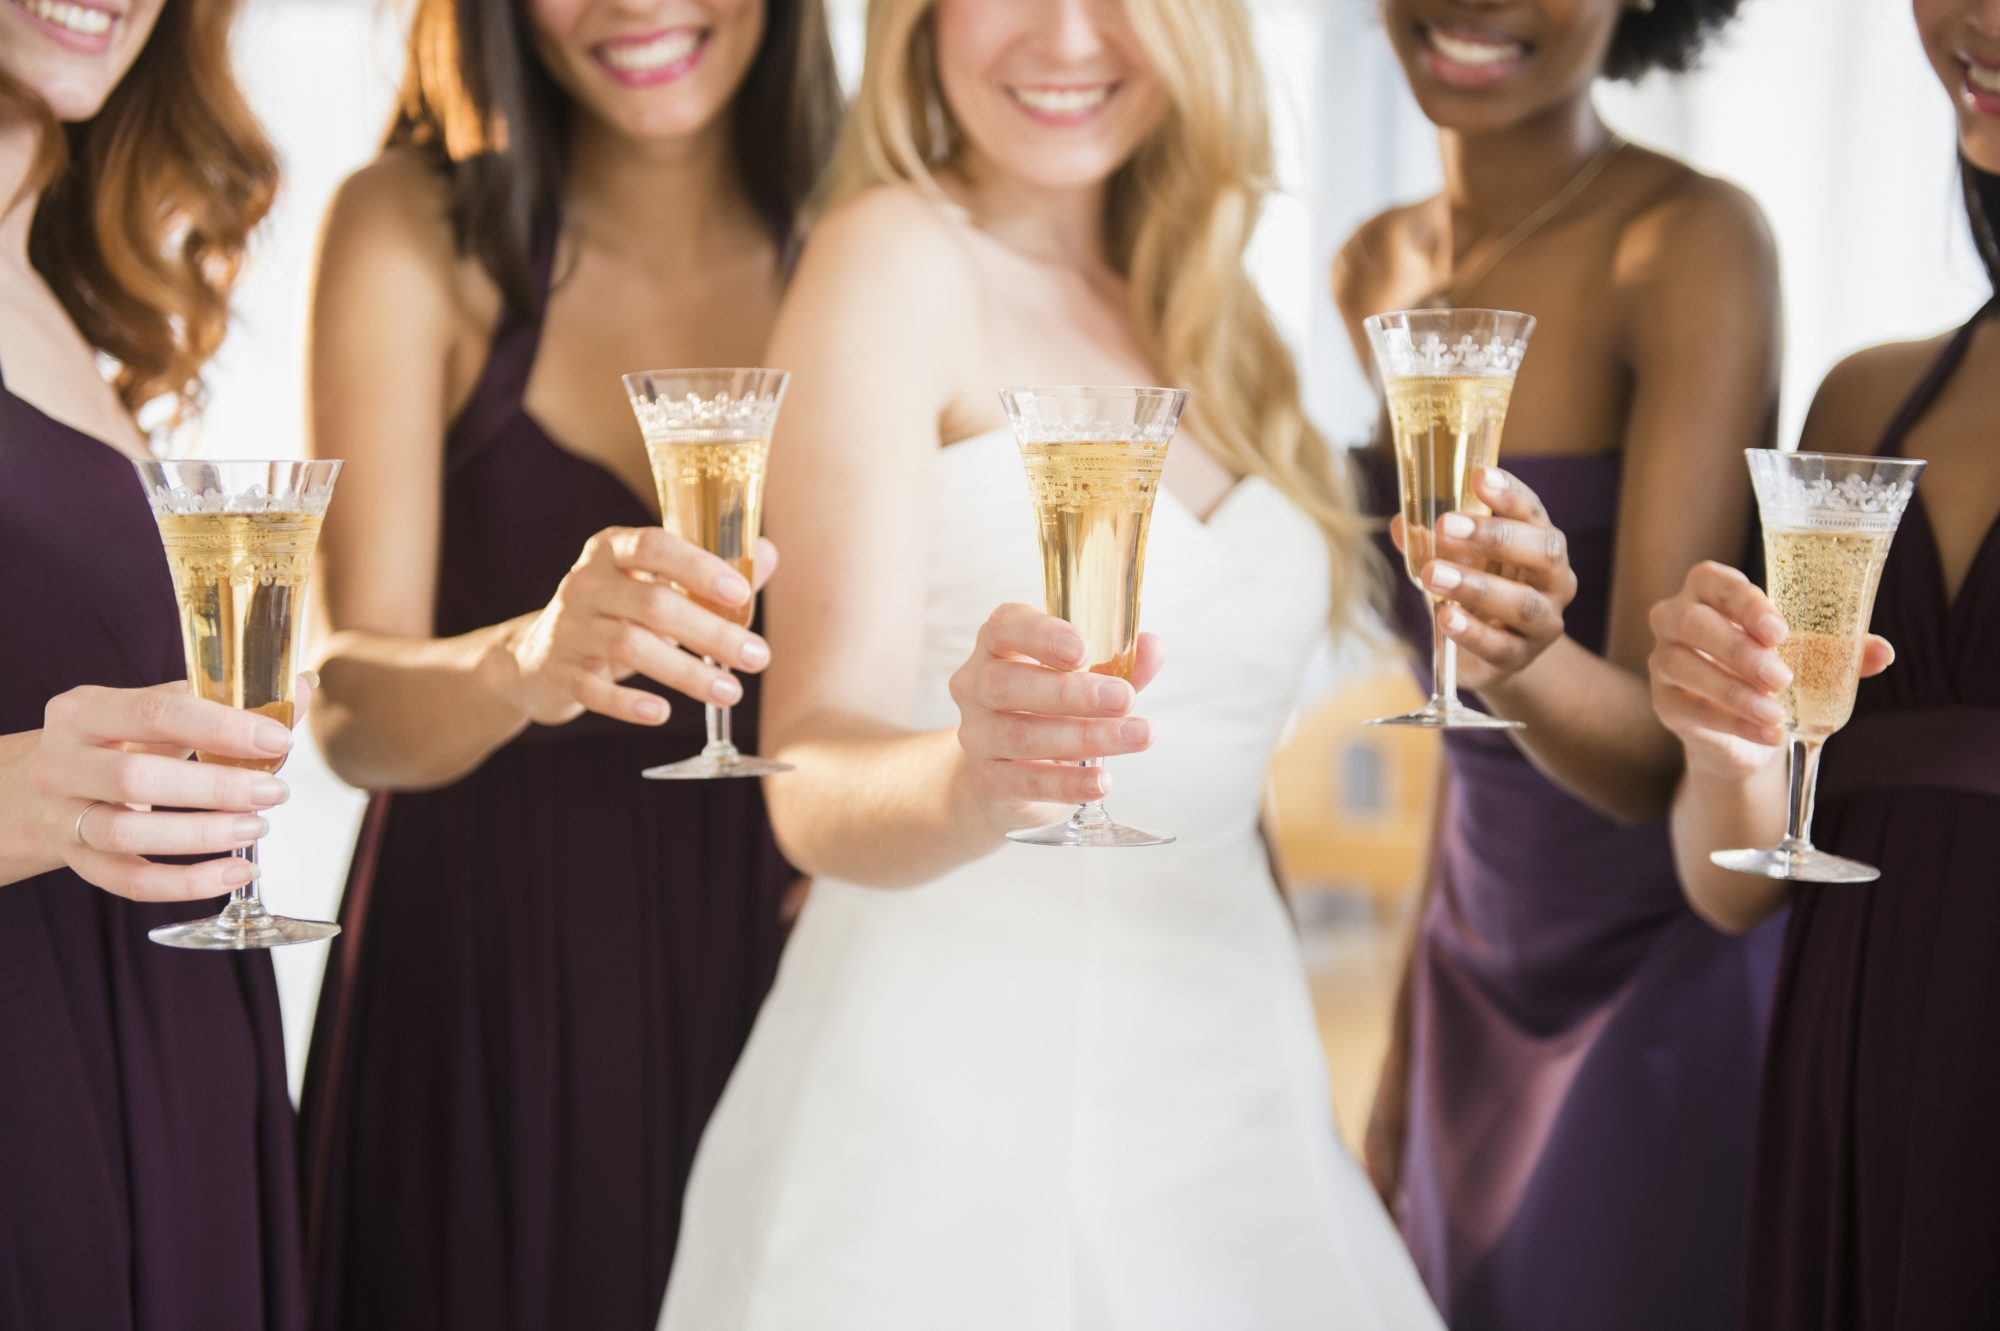 Bride and Bridesmaids Toasting with Champagne